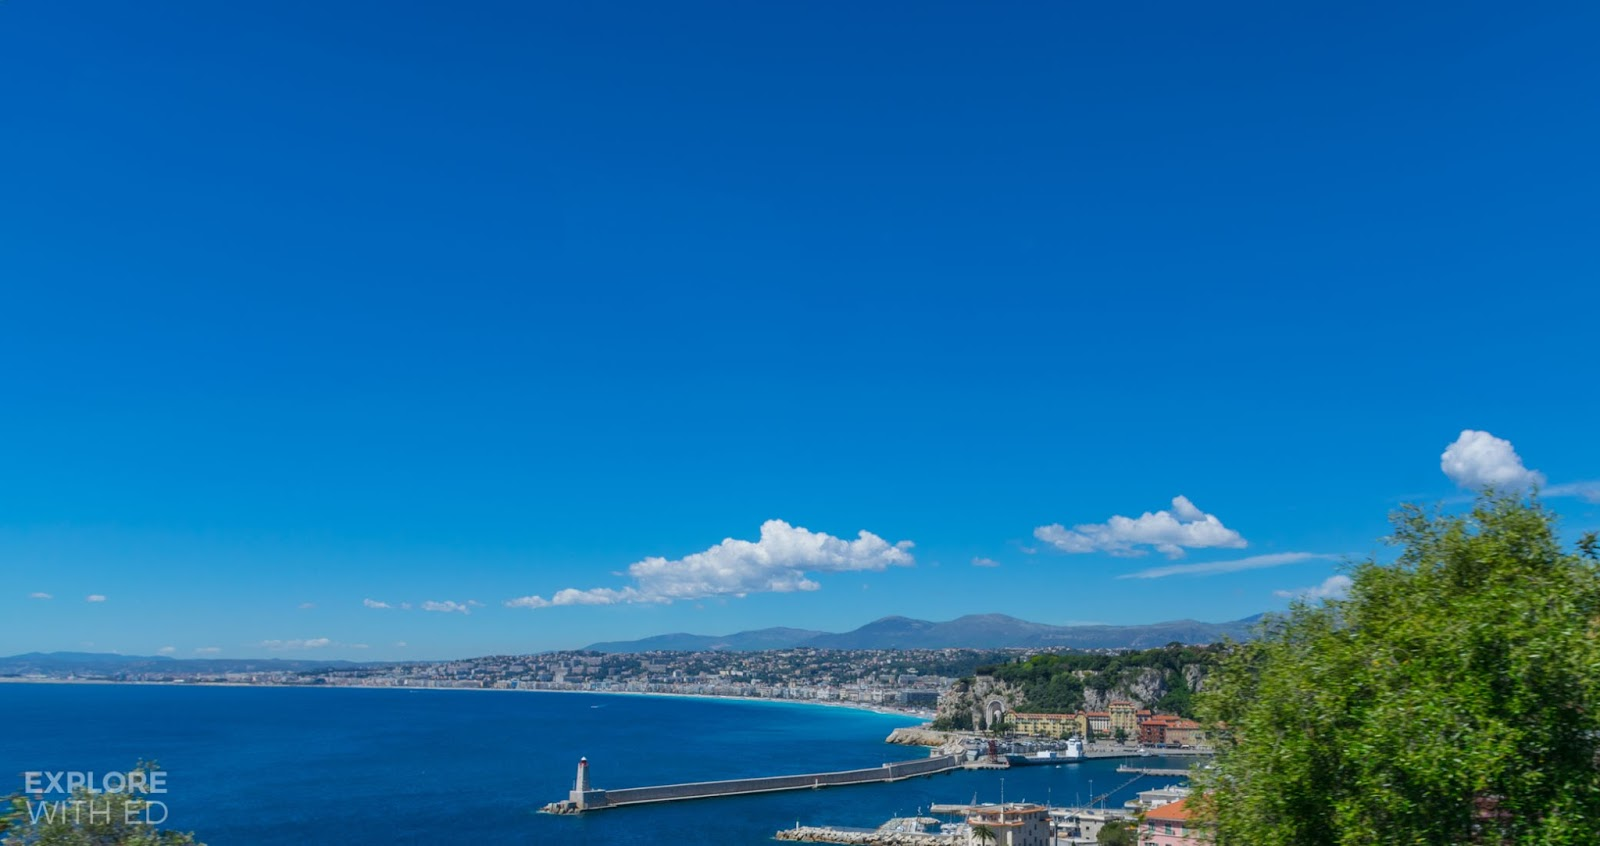 Shore excursions from Villfranche to Nice